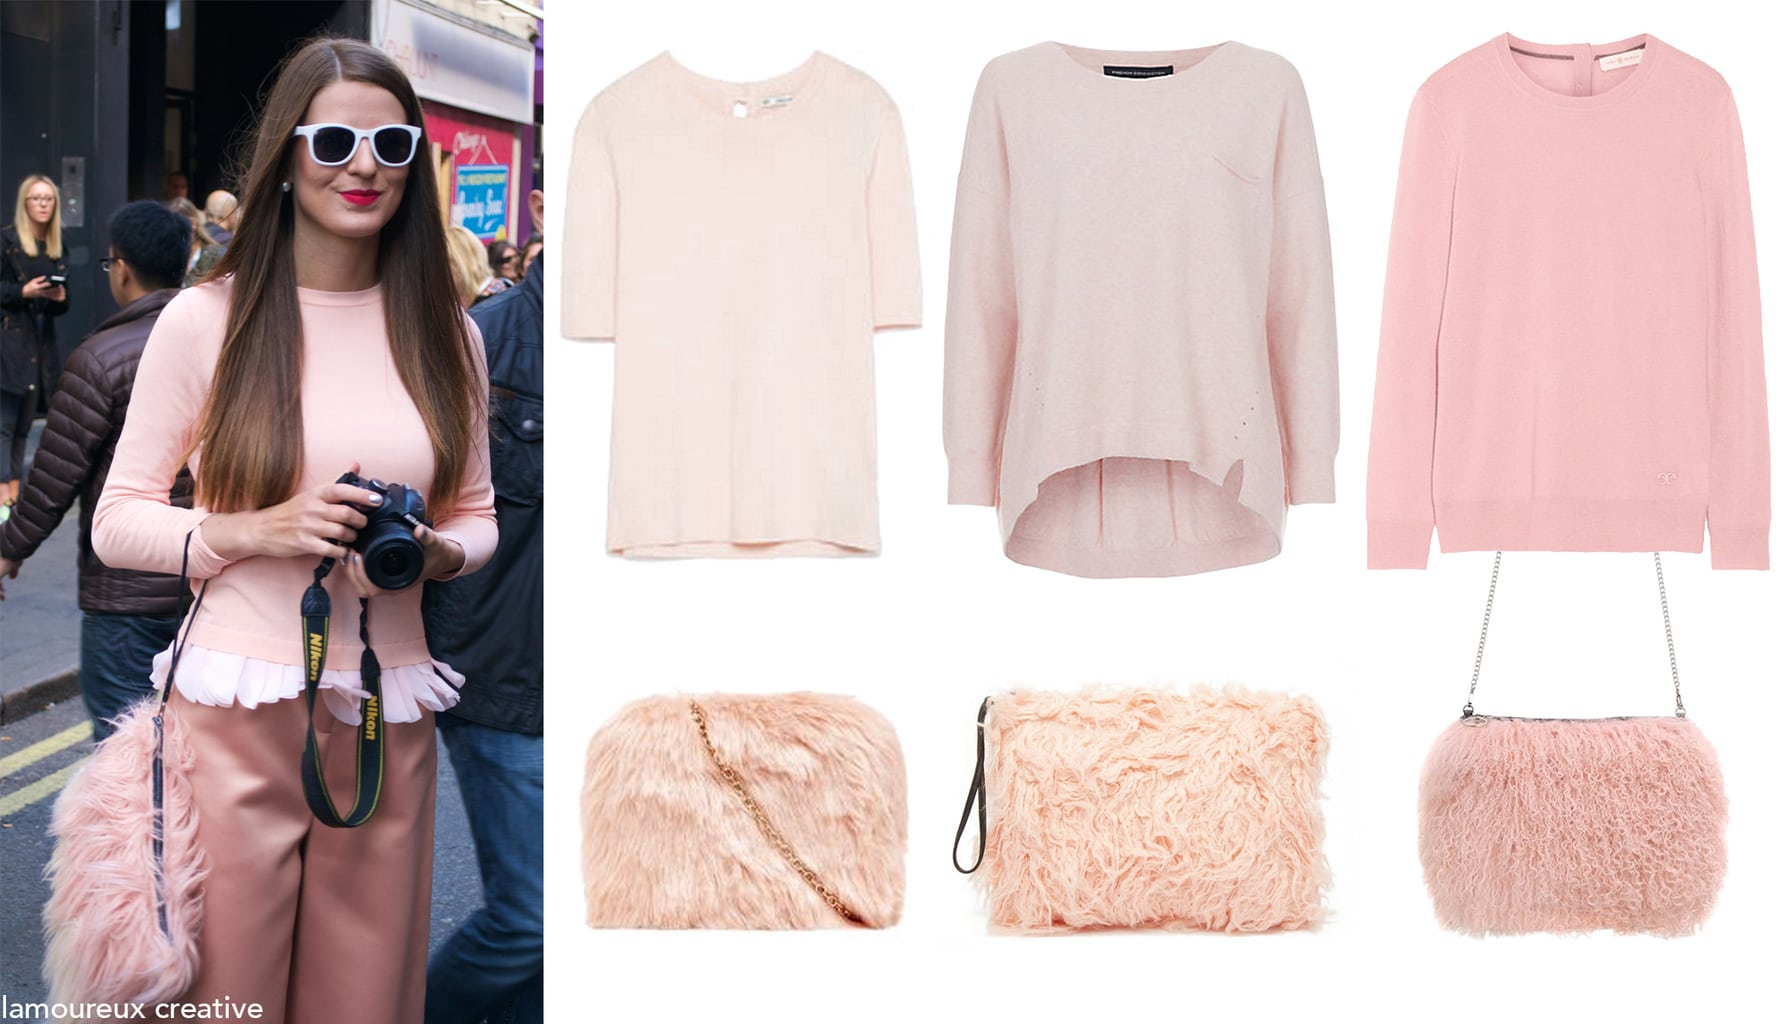 Blush pink sweaters and furry bags